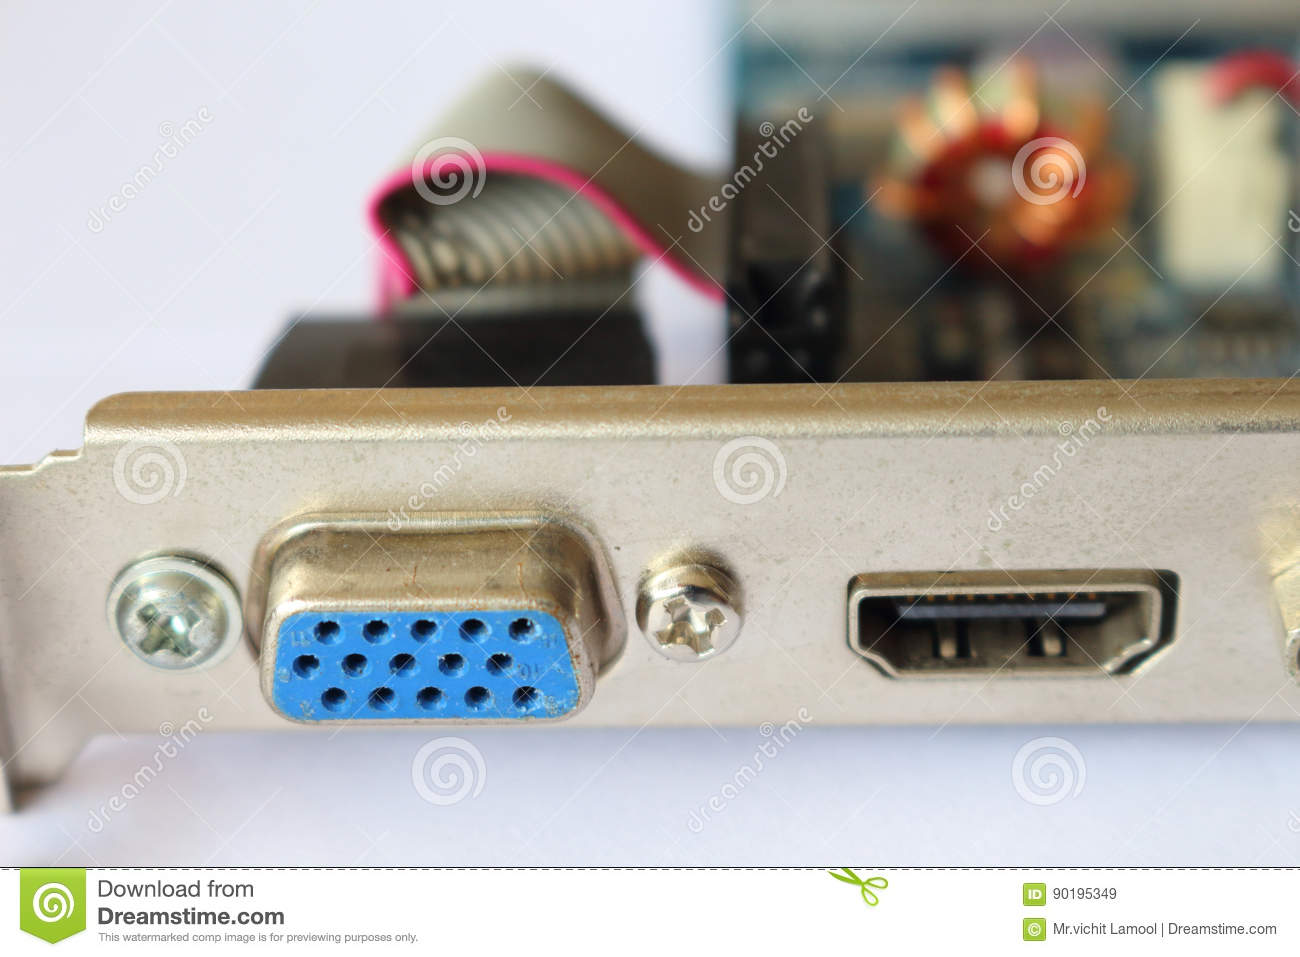 VGA Port And HDMI Port On Computer Video Card  Stock Image